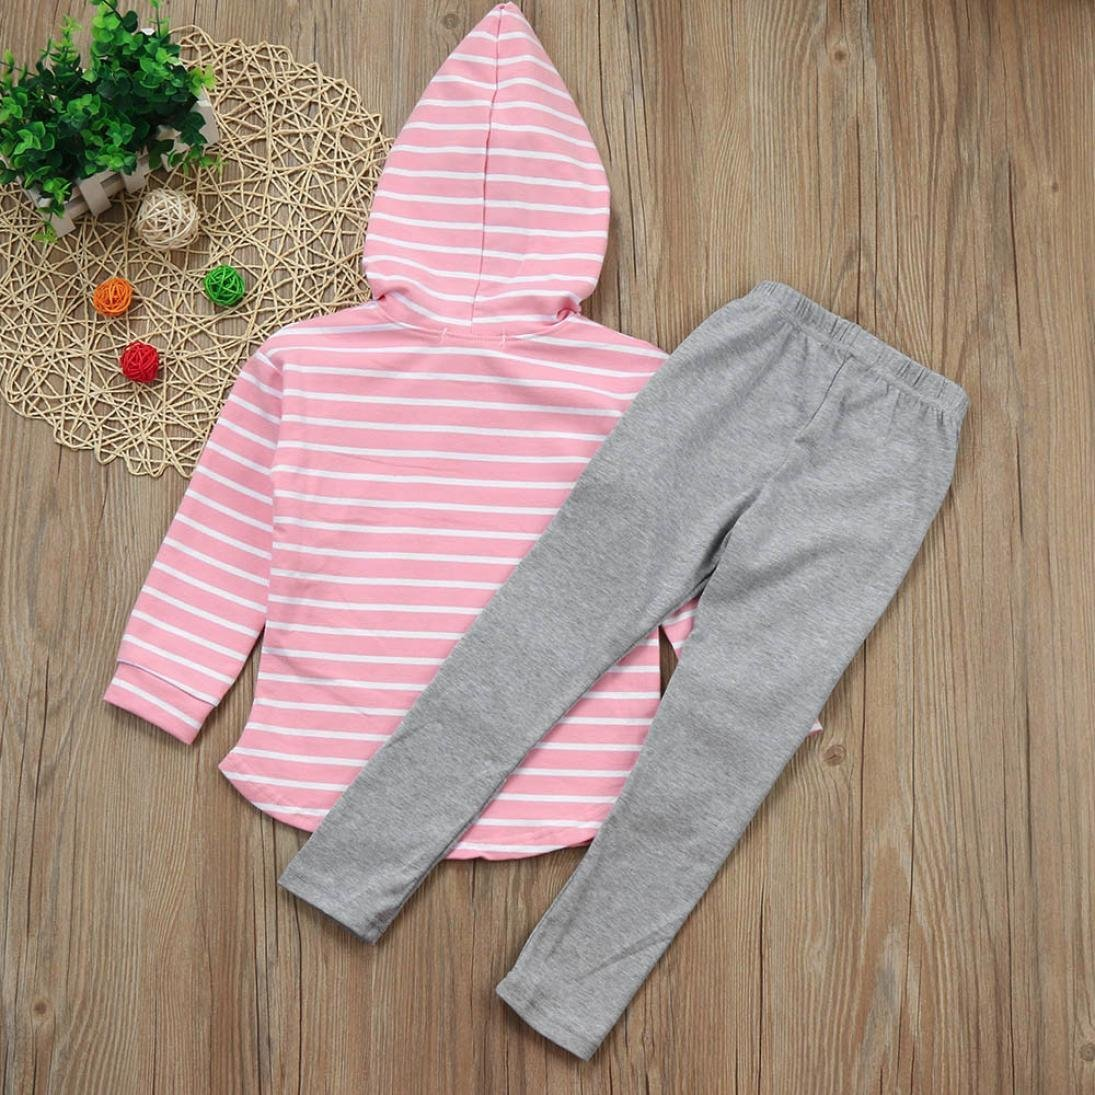 2pcs Toddler Baby Boy Girl Autumn Stripe Hoodie Sweatshirt Long Sleeve Tops + Patch Pants Clothes Set Outfits (Pink, 3T) by Aritone - Baby Clothes (Image #4)